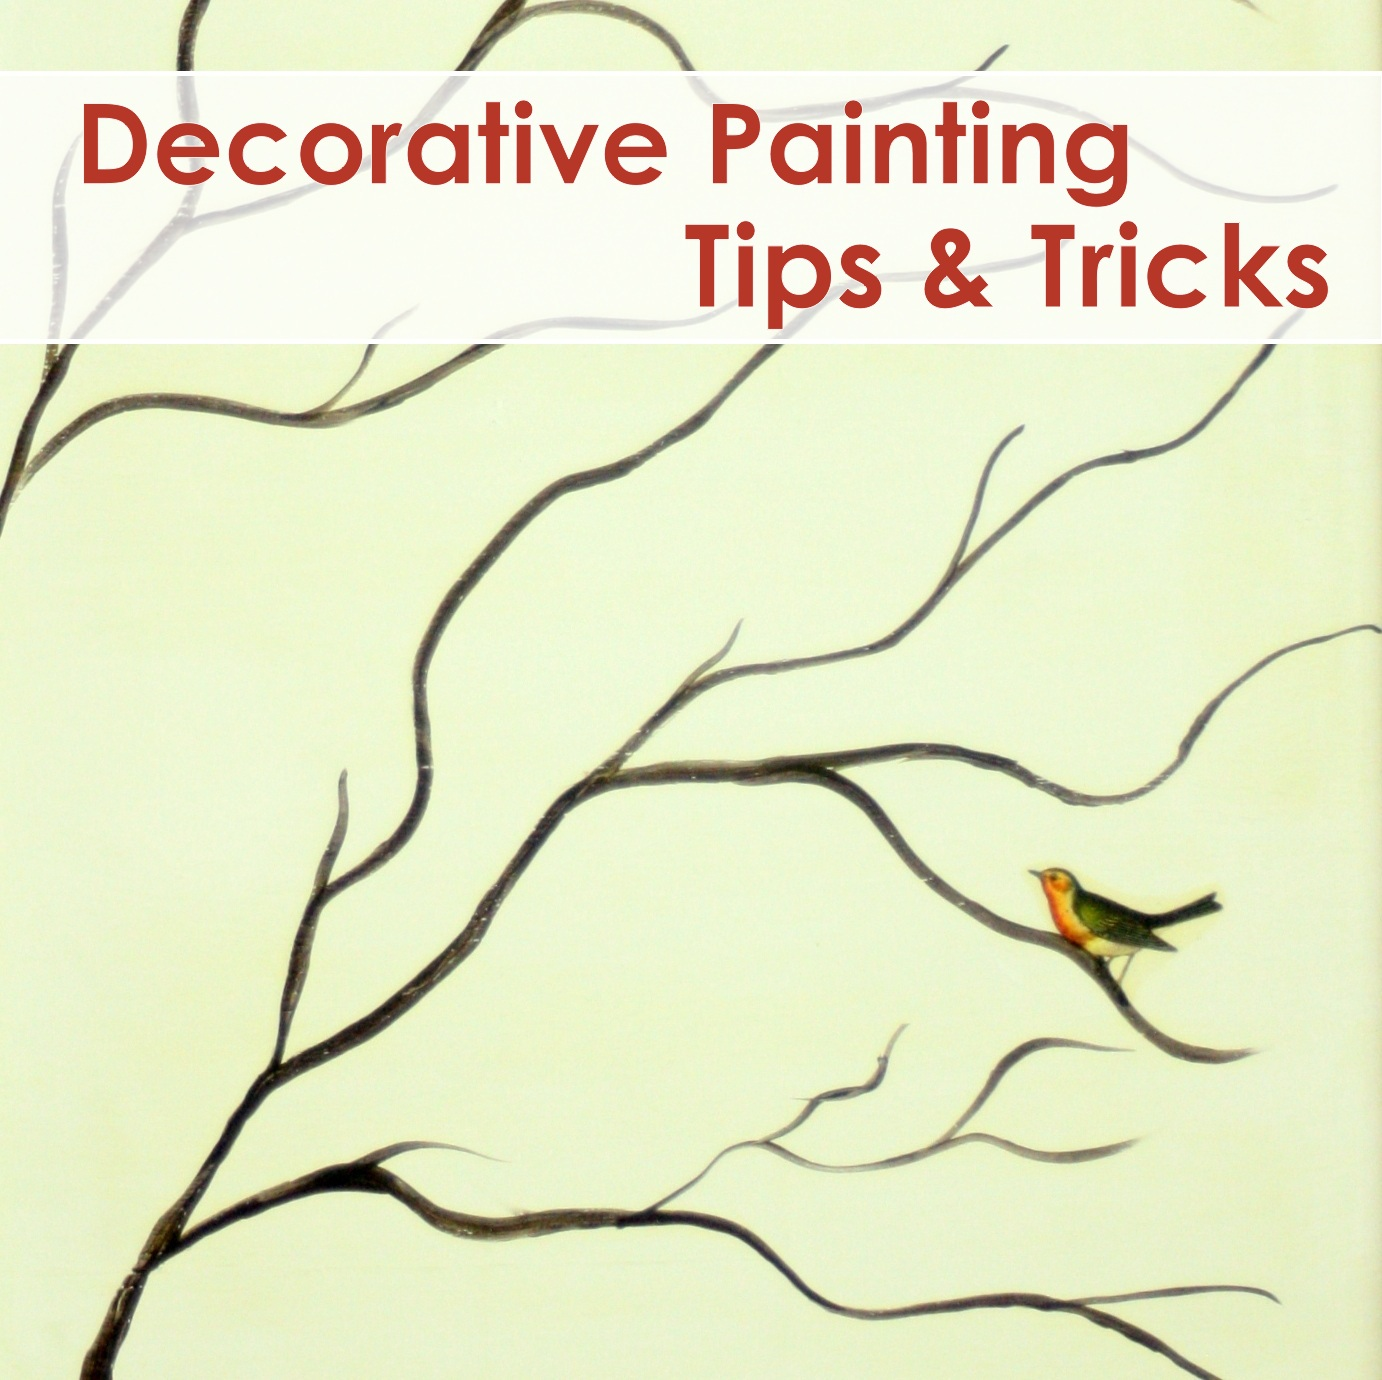 Not so very long ago I was totally freaked out by the thoughts of  decorative painting  Since my husband  better known on my blog as Mr  SCC   is a genius at. Decorative Painting Tips   Tricks   The Graphics Fairy